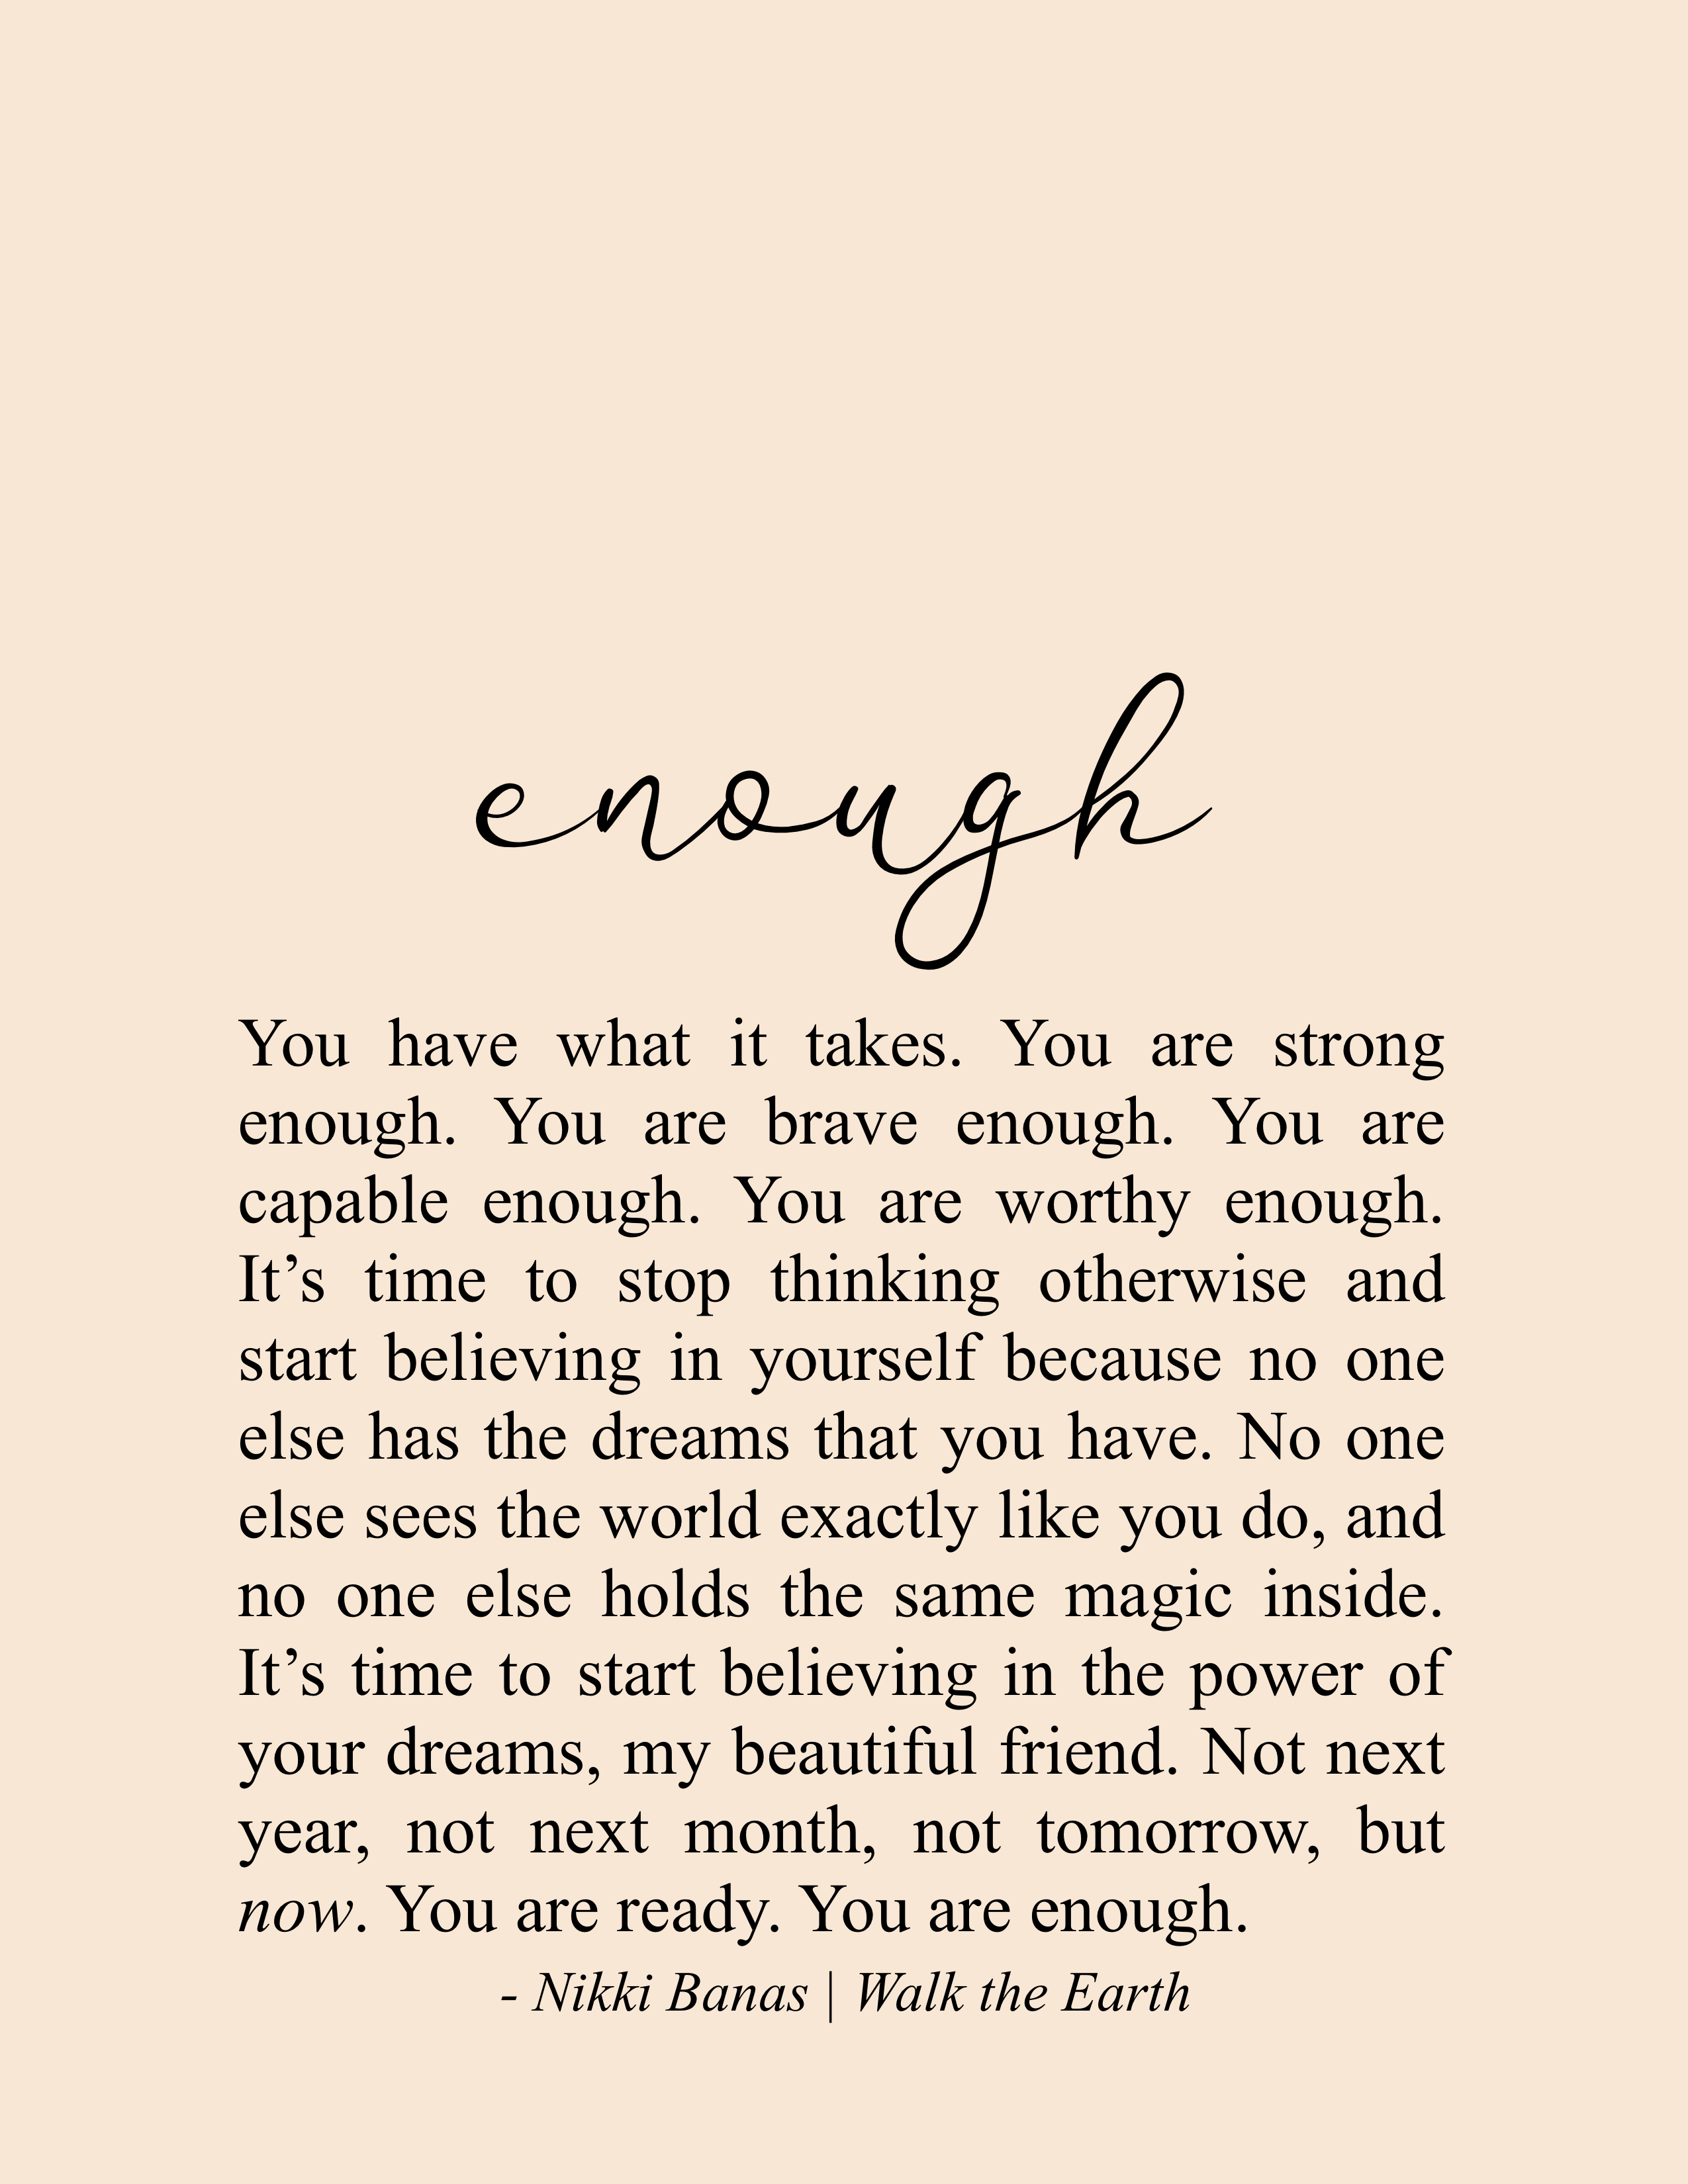 You are Enough Quote, Inspiration & Encouragement, Nikki Banas